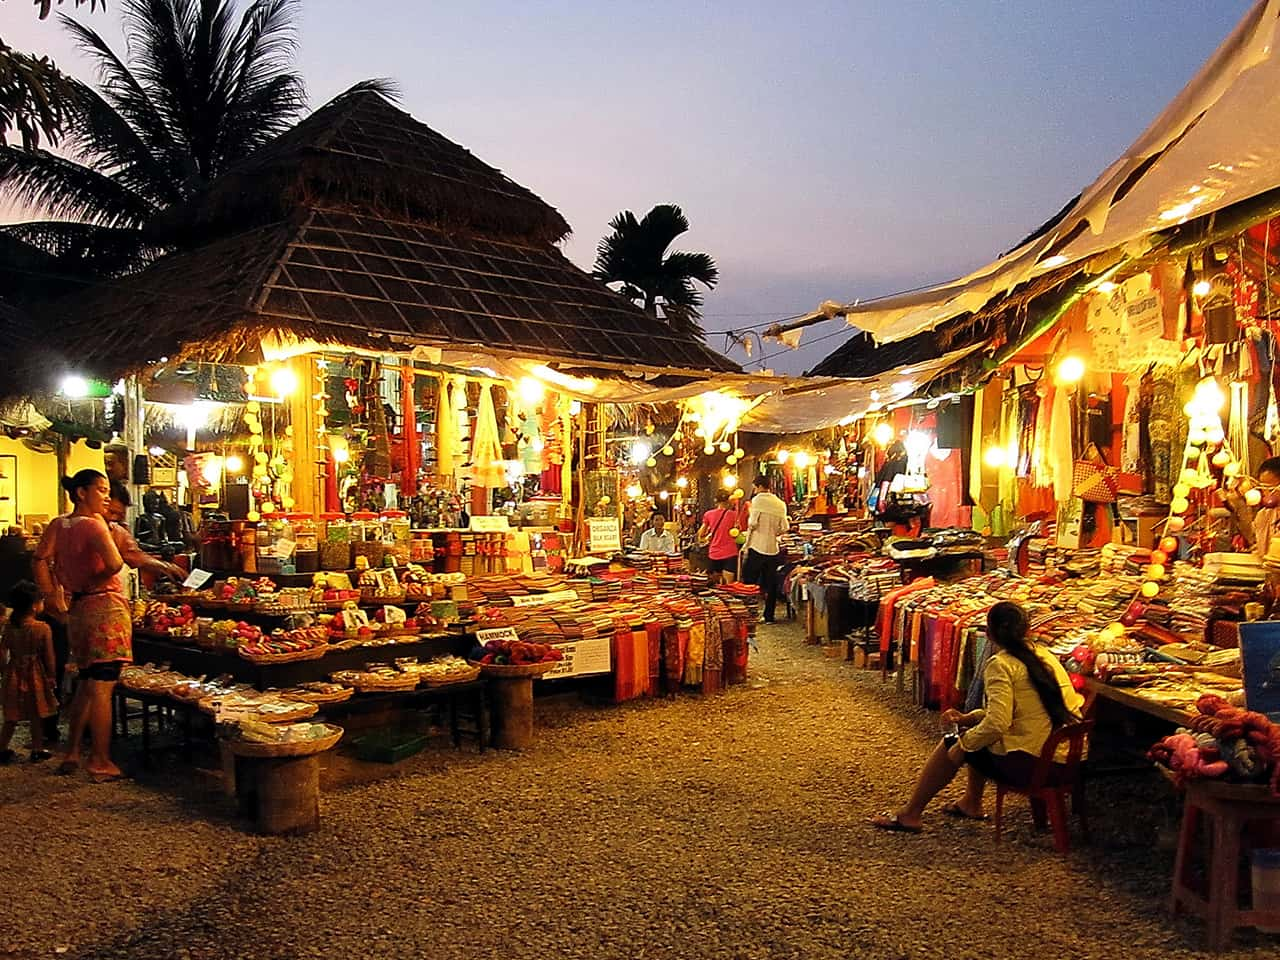 Things to do in the Evening in Siem Reap